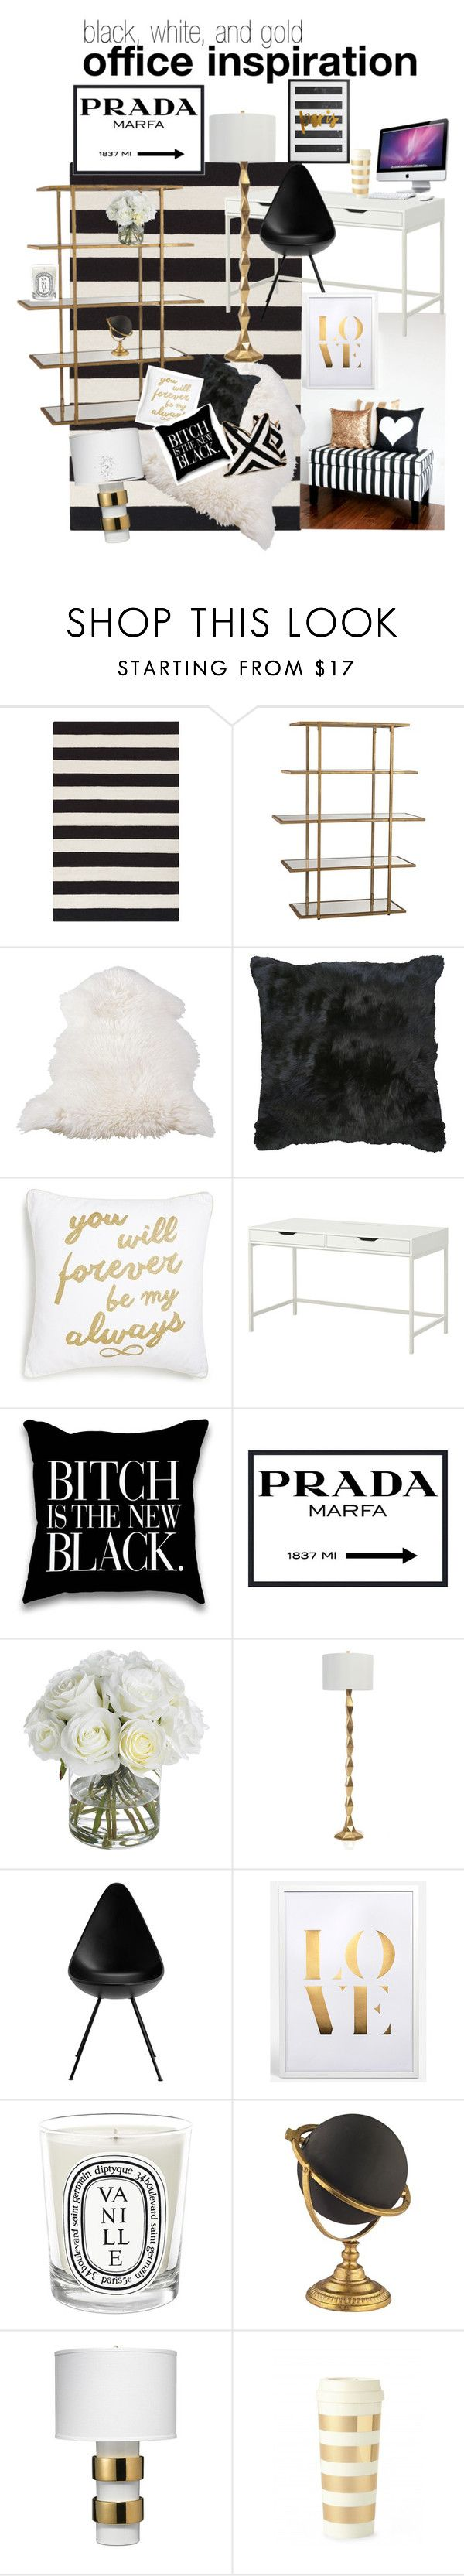 """""""black, white, and gold office inspiration"""" by sammantha-bishop on Polyvore featuring interior, interiors, interior design, home, home decor, interior decorating, Surya, Levtex, CO and Prada"""